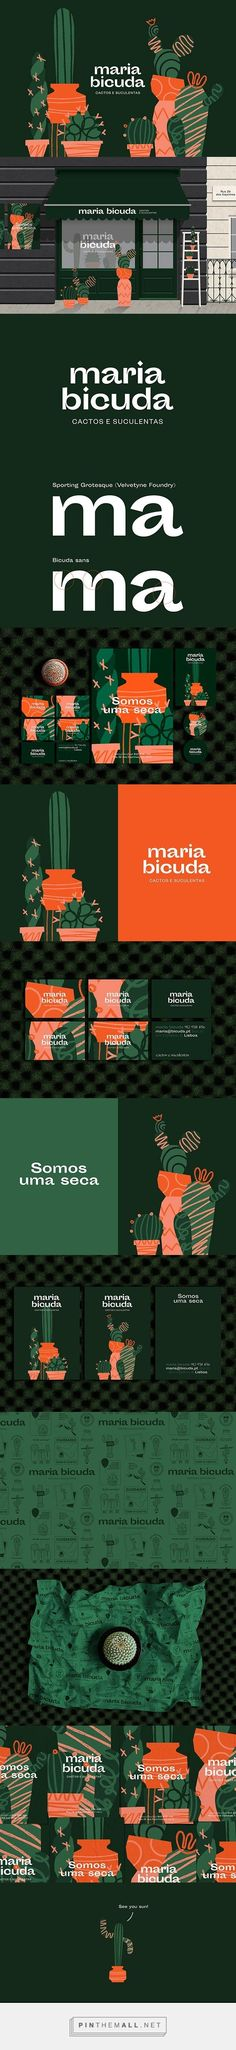 Best Brand Identity Designs Of The Week 10 - Graphic Design - product - branding design - identity design - Art - Inspirations - . Brand Identity Design, Corporate Design, Corporate Branding, Logo Branding, Branding Design, Branding Ideas, Web Design, Icon Design, Inspiration Logo Design